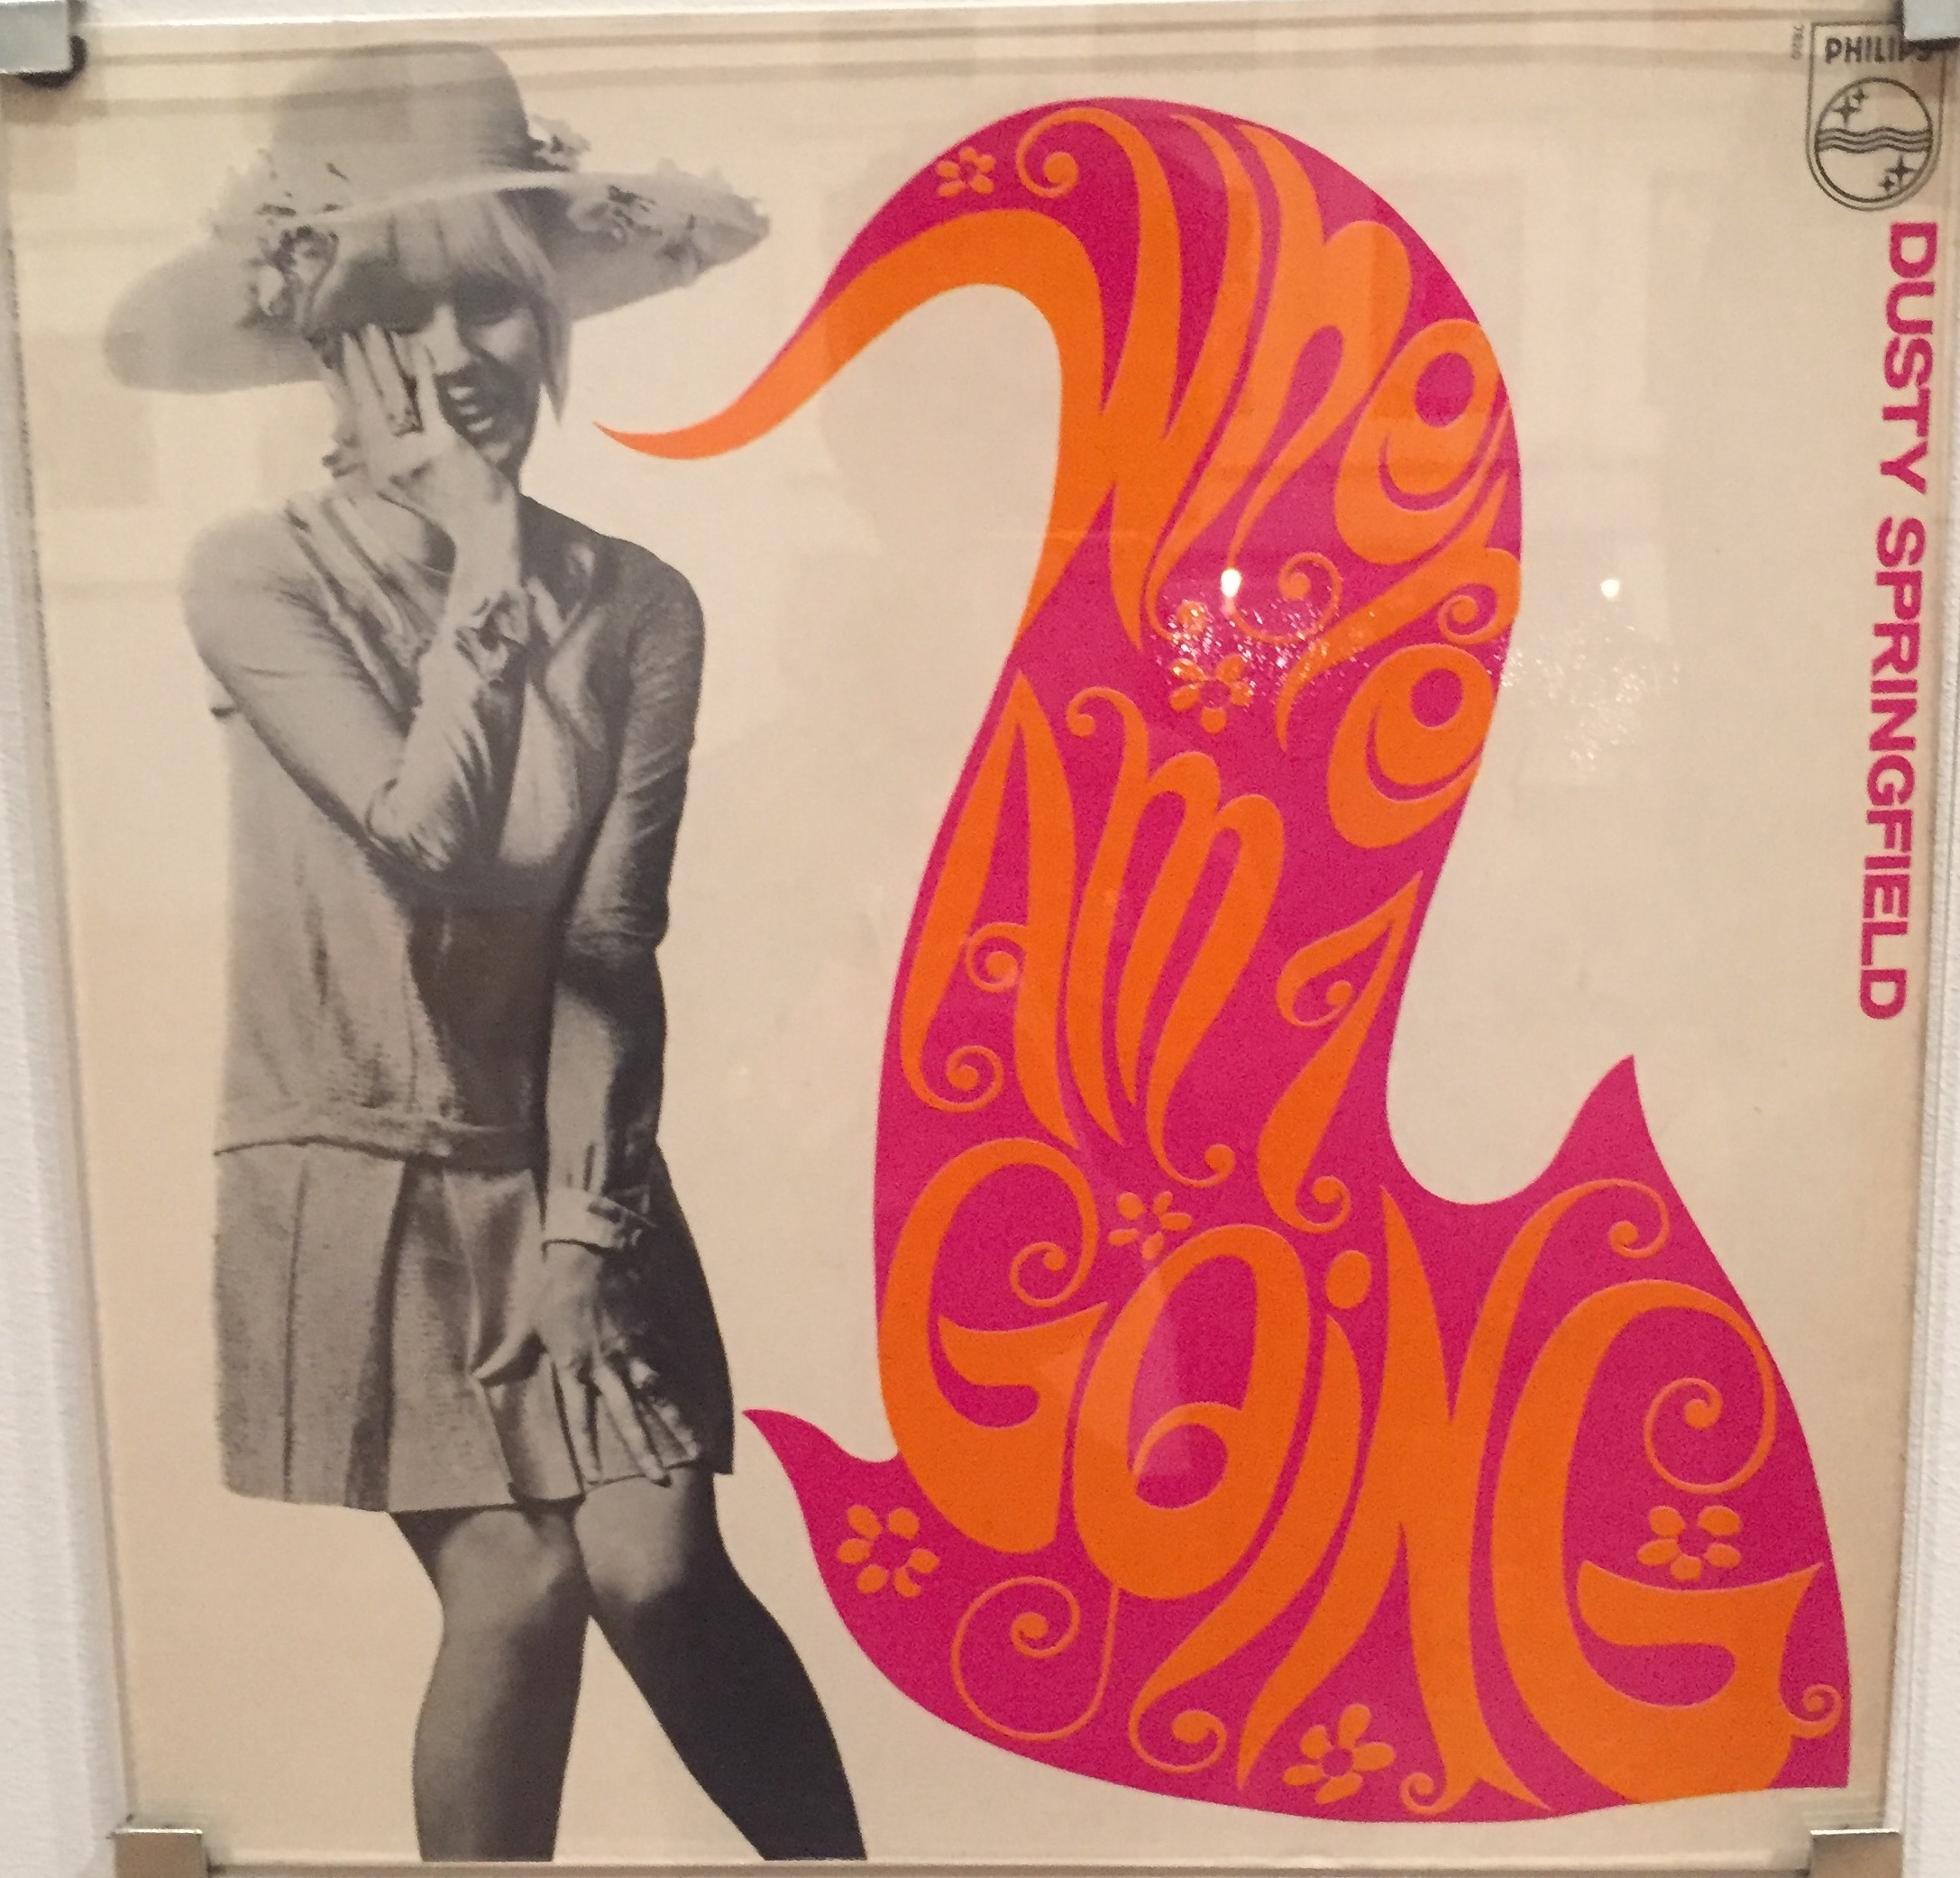 Counterculture Movements During The 1960s